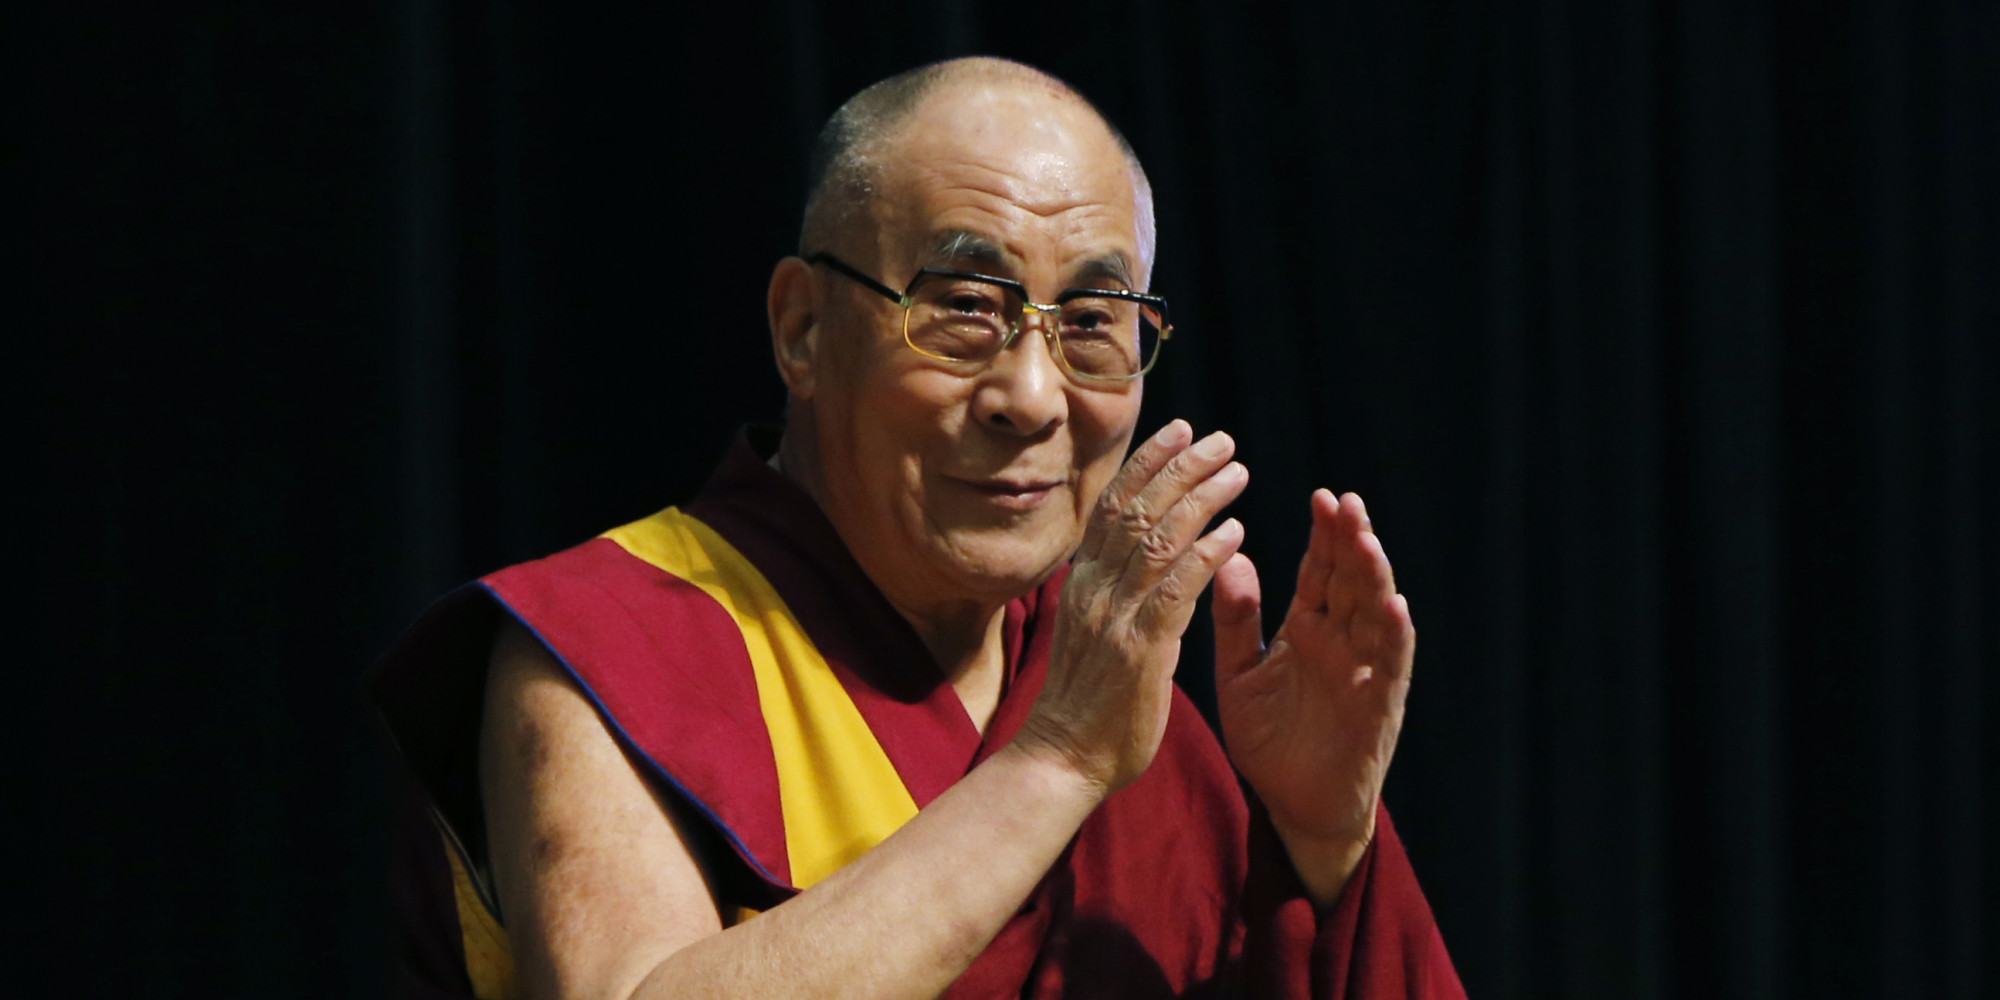 Tibetan spiritual leader the Dalai Lama greets an audience before his religious speech in Tokyo, Monday, Nov. 25, 2013. The Dalai Lama is in Japan for a 12-day visit to deliver speeches.(AP Photo/Koji Sasahara)